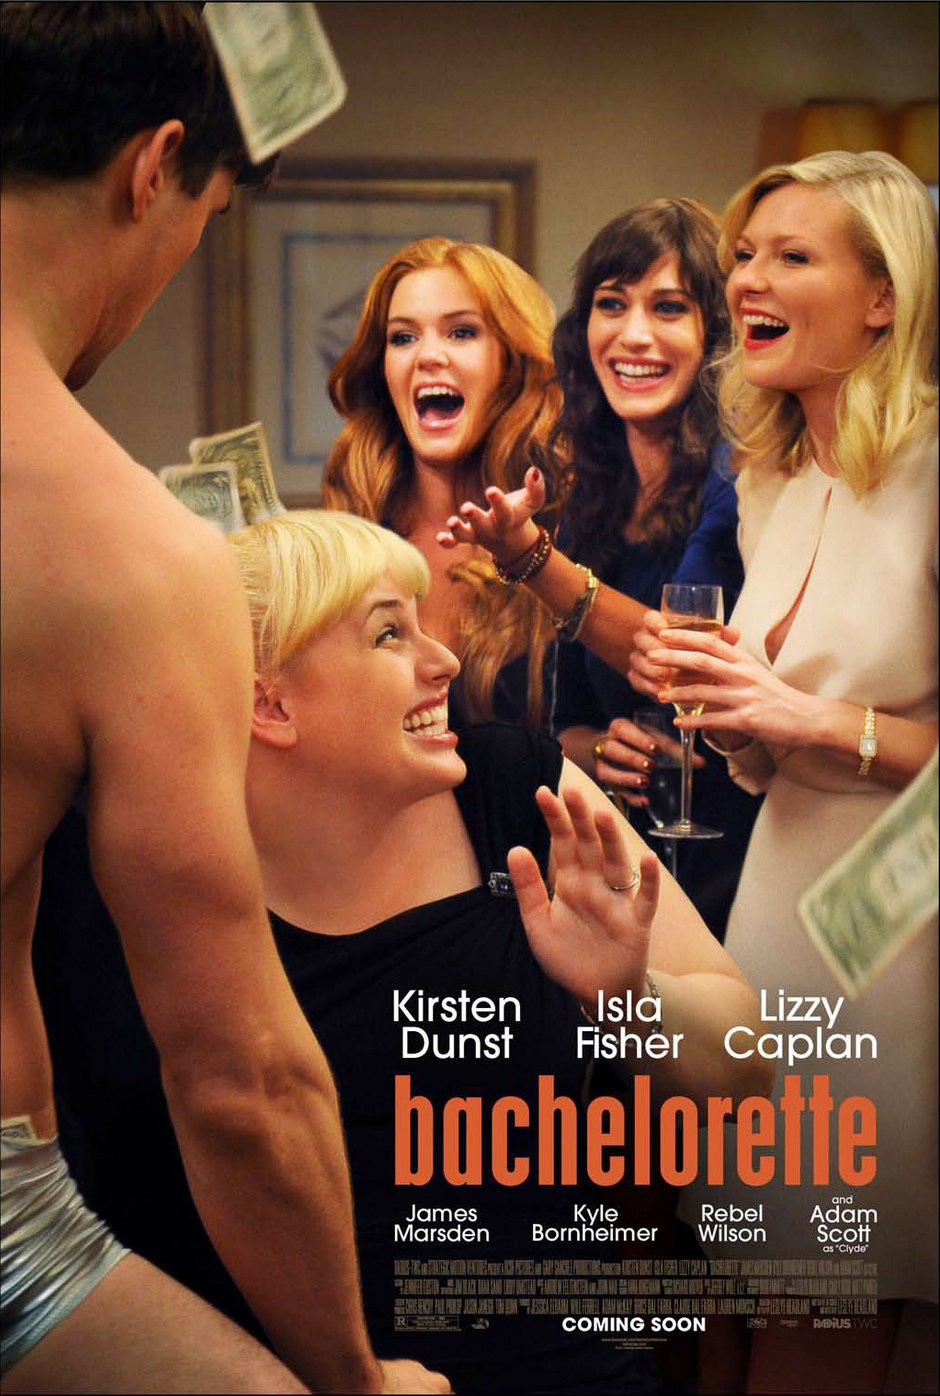 Bachelorette [TRUEFRENCH] [DVDRIP] 1CD